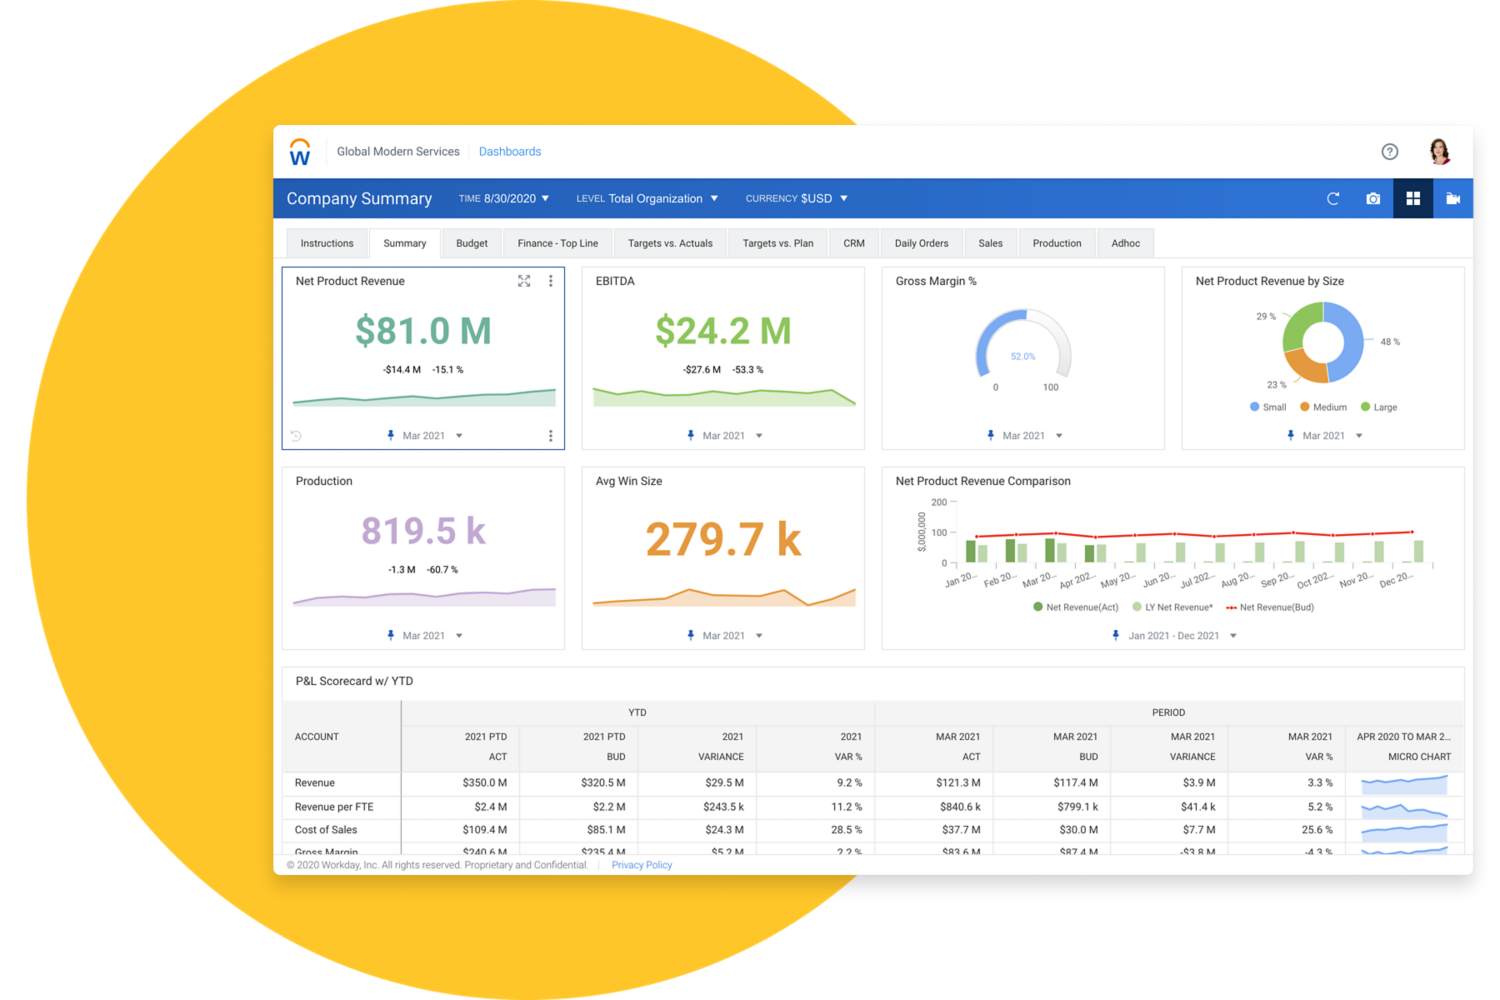 Workday Adaptive Planning's Top Lines dashboard showing bar graphs and numerical values for net revenue, EBITDA and PP&L Scorecard.